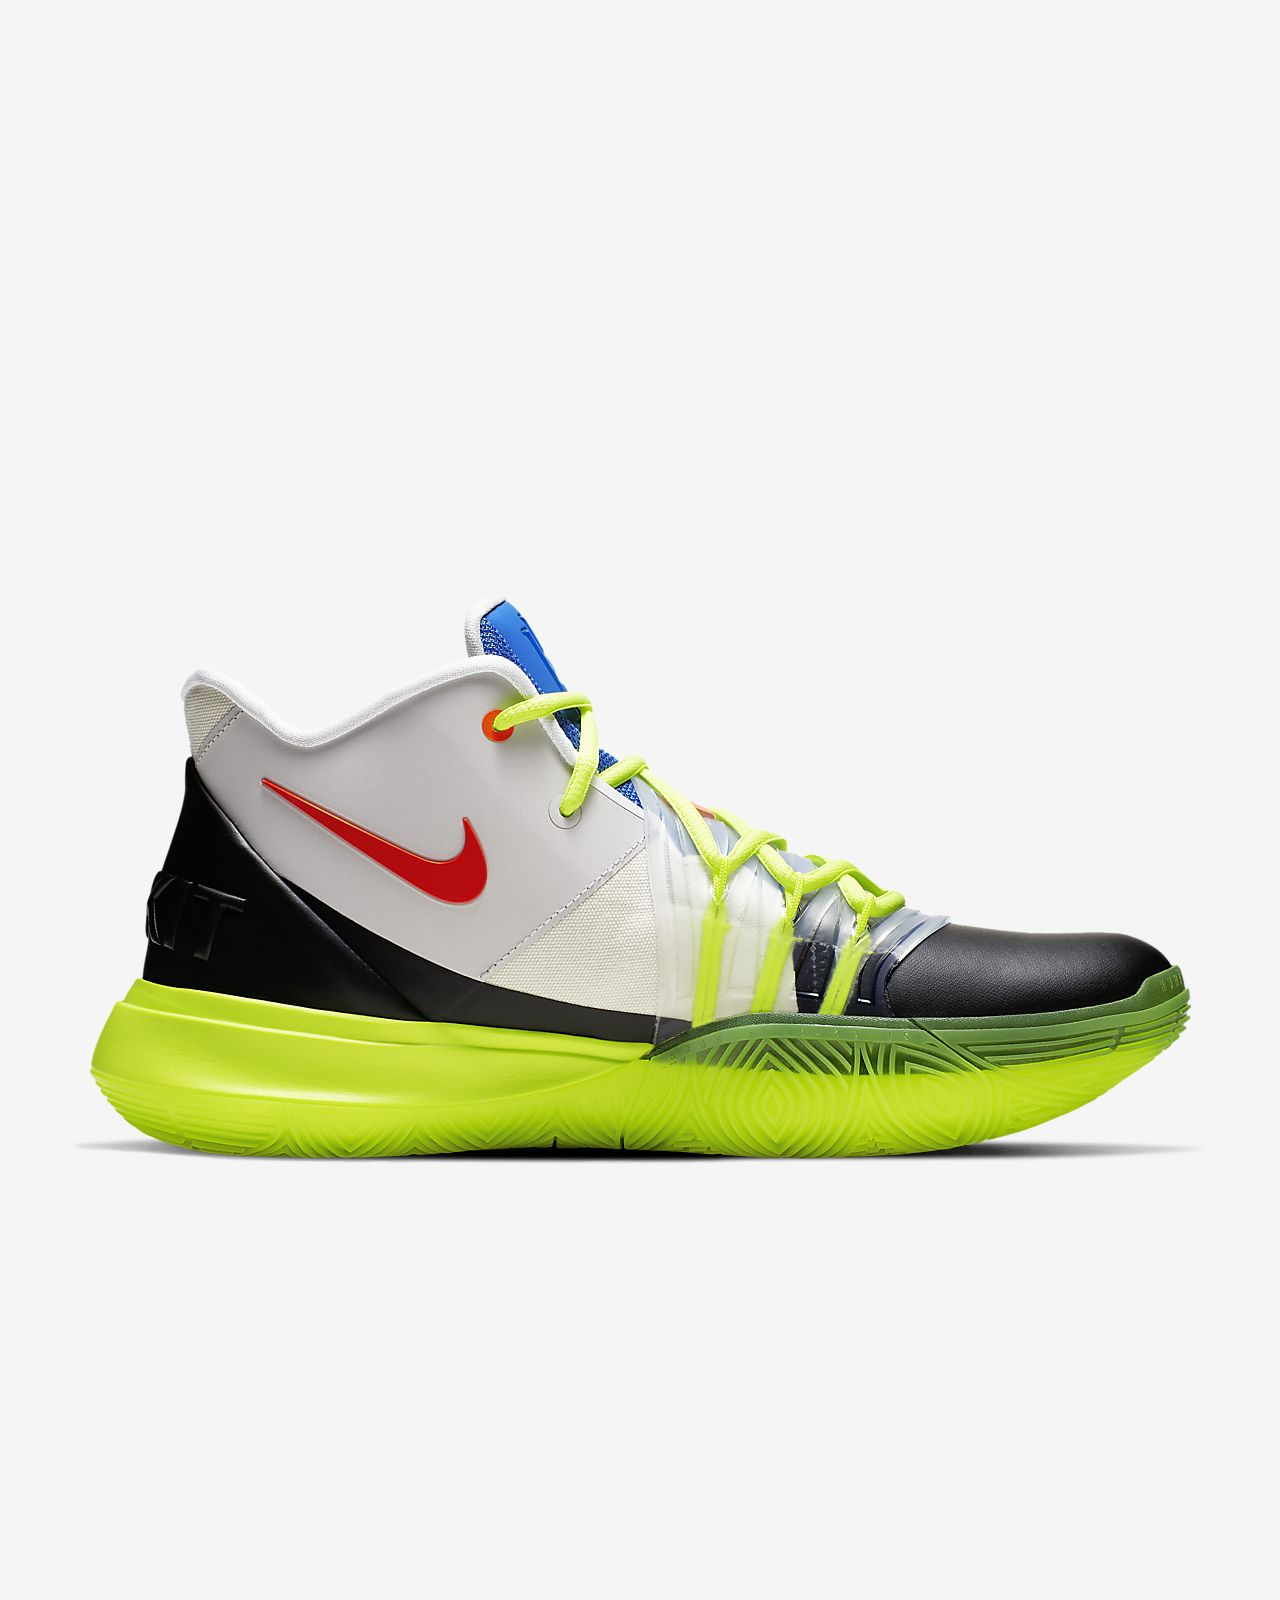 9aadf6fcb45 Kyrie 5 x ROKIT All Star Basketball Shoe. Nike.com ID